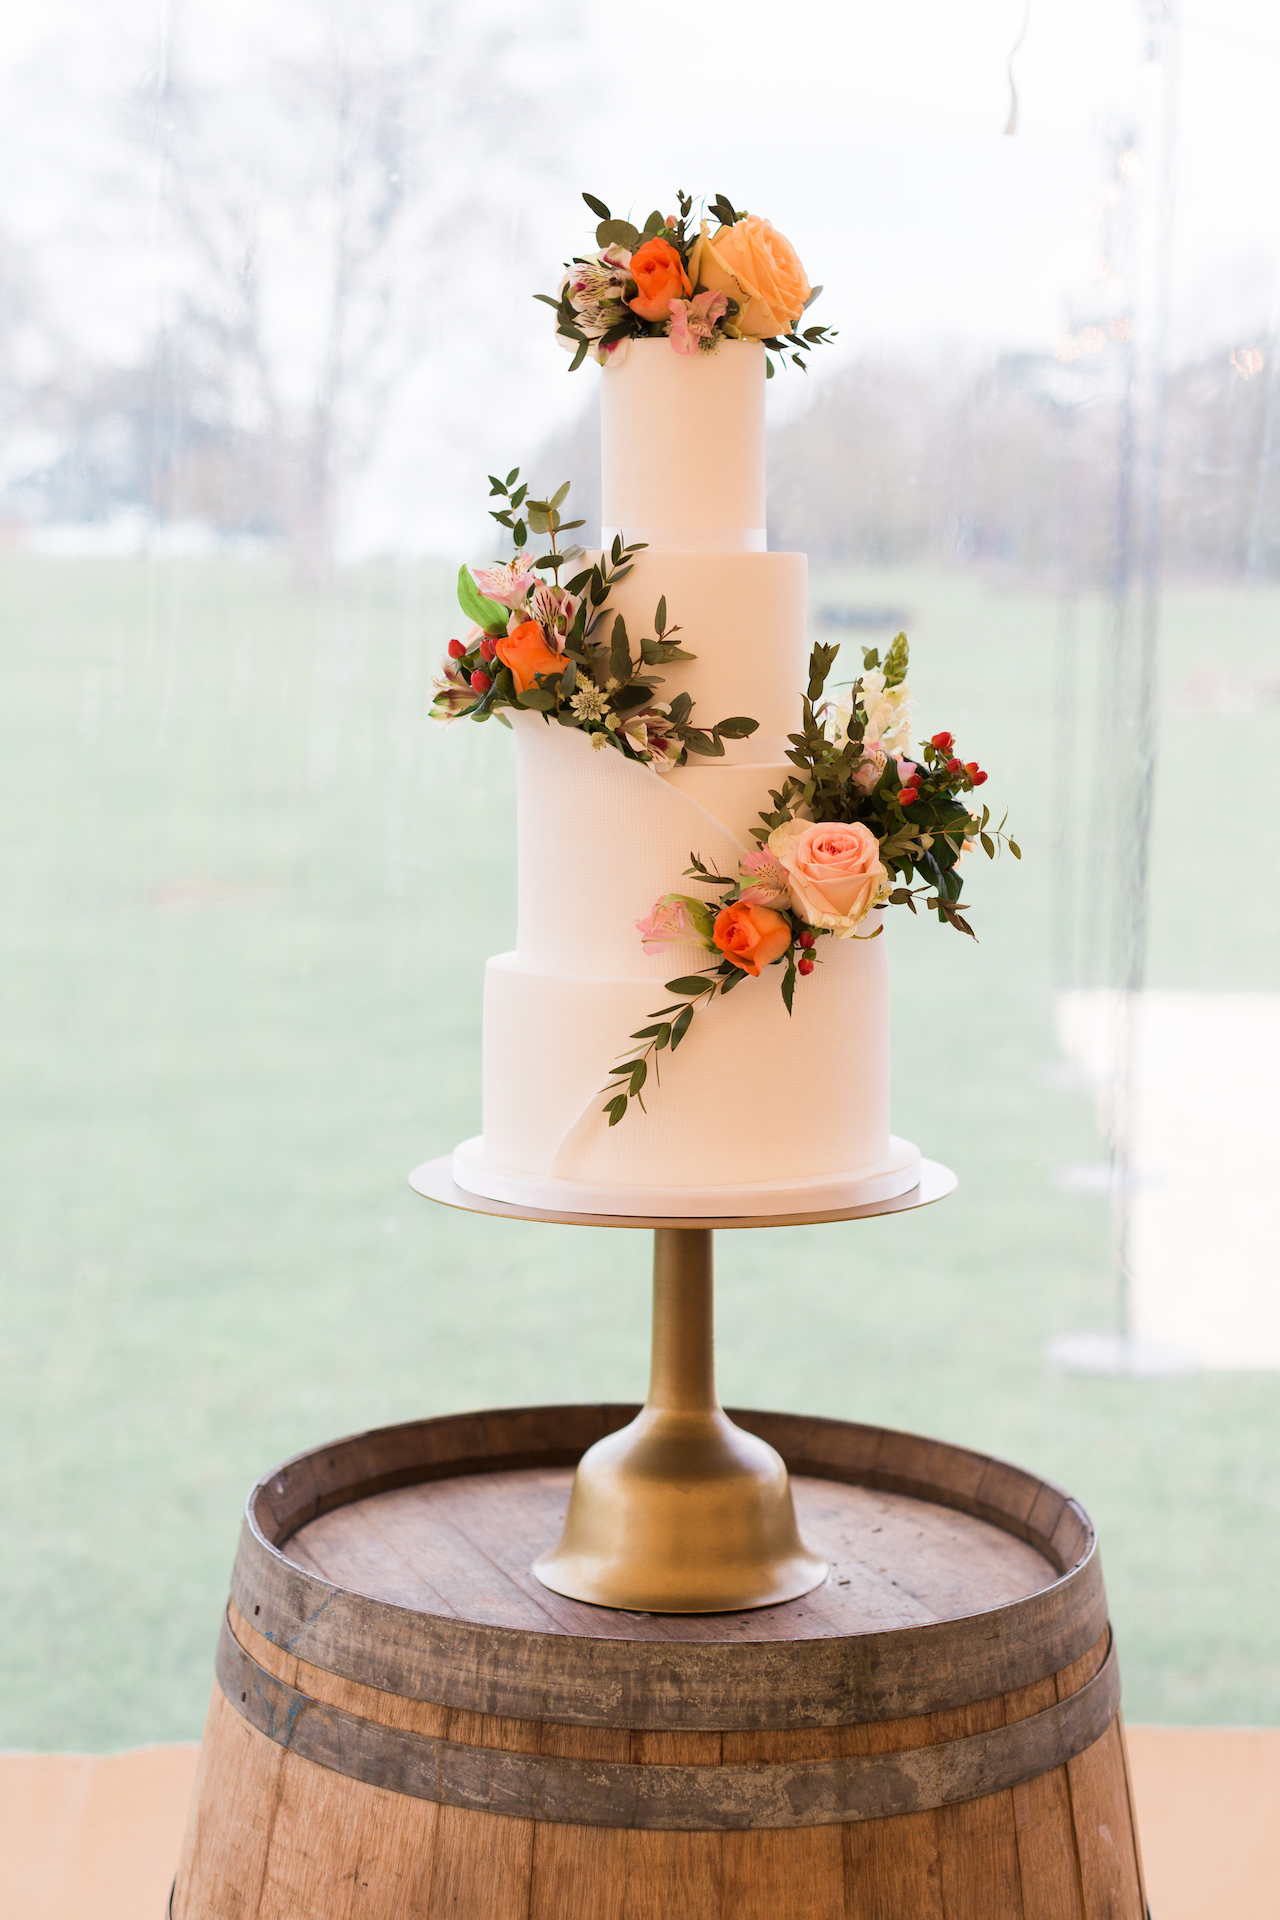 PapaKåta Spring Open Weekend Sperry Tent captured by Lucy Davenport Photography: Wine Barrel Cake Table with Wedding Cake by Cherry Blossom Bakes